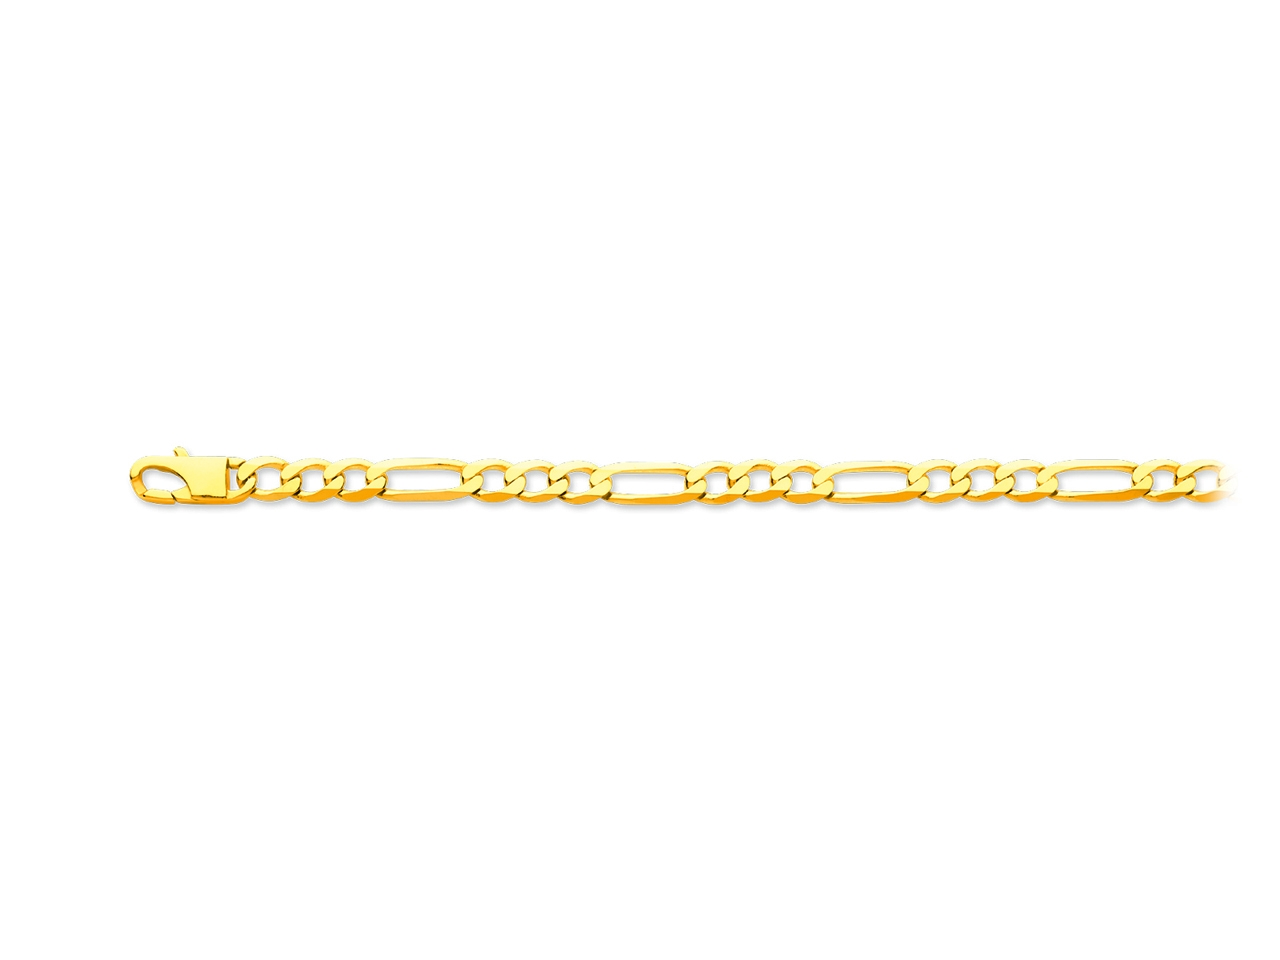 Bracelet maille alternée 1/3 ultra plate, Or jaune 18k, 5,6 mm, 21 cm